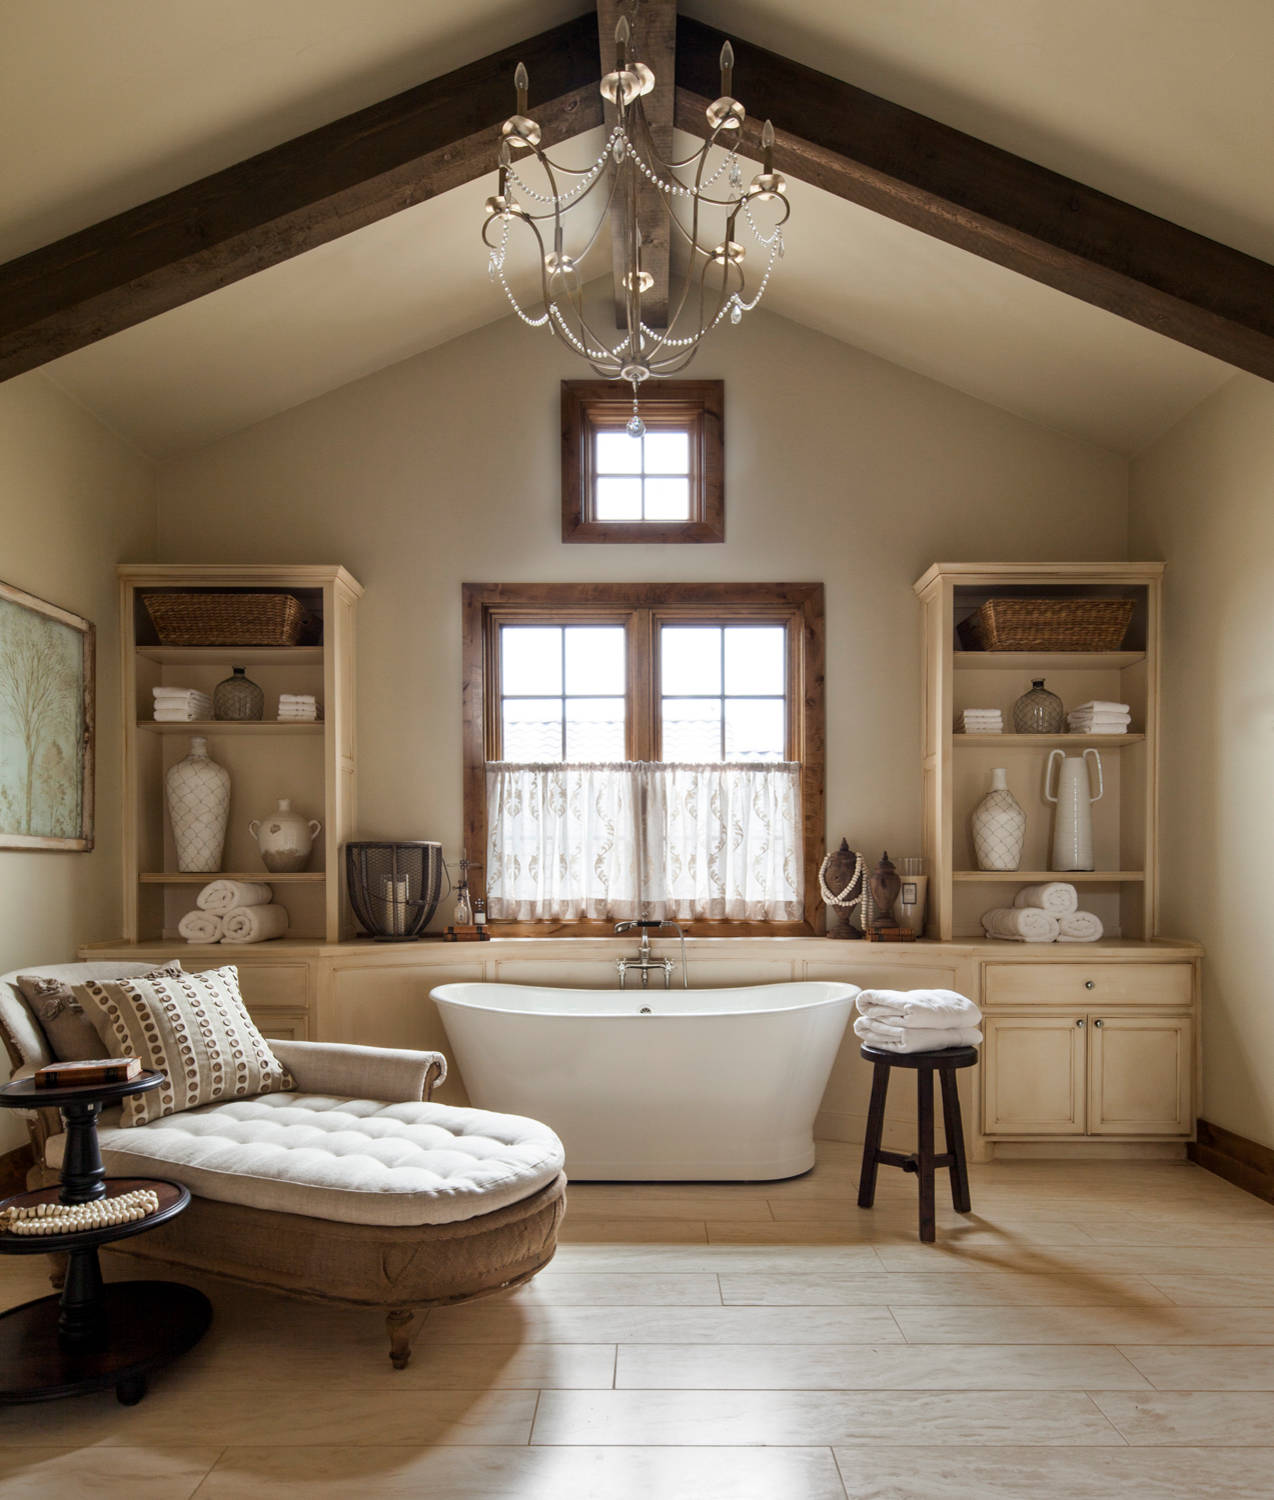 Bathroom Ideas: 16 Fantastic Rustic Bathroom Designs That Will Take Your